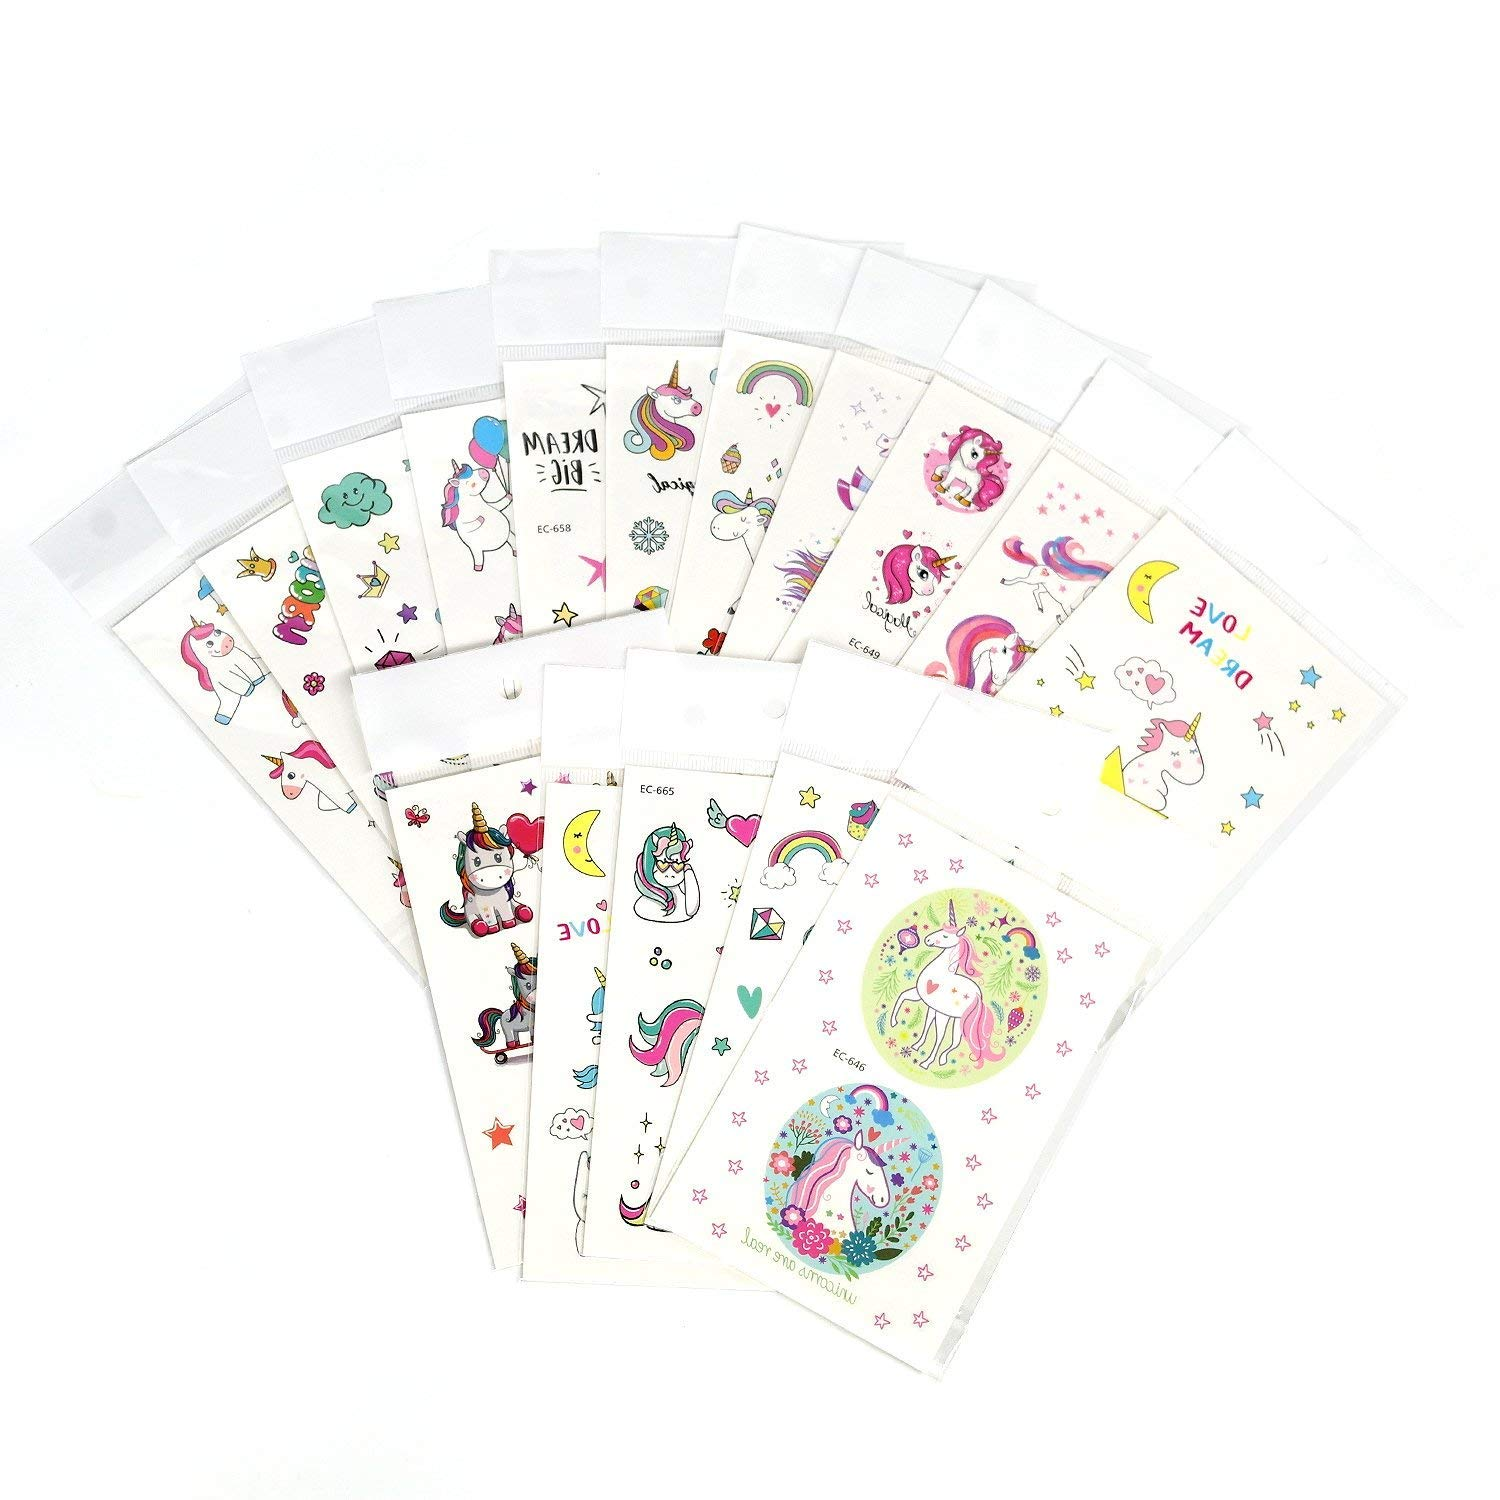 SouthStar Unicorn Party Favours, 40pcs Unicorn Set, Unicorn Bracelet, Unicorn Ring, Unicorn Key Chain, Unicorn Temporary Tattoos for Girls Children Birthday Party Favors Party Supplies